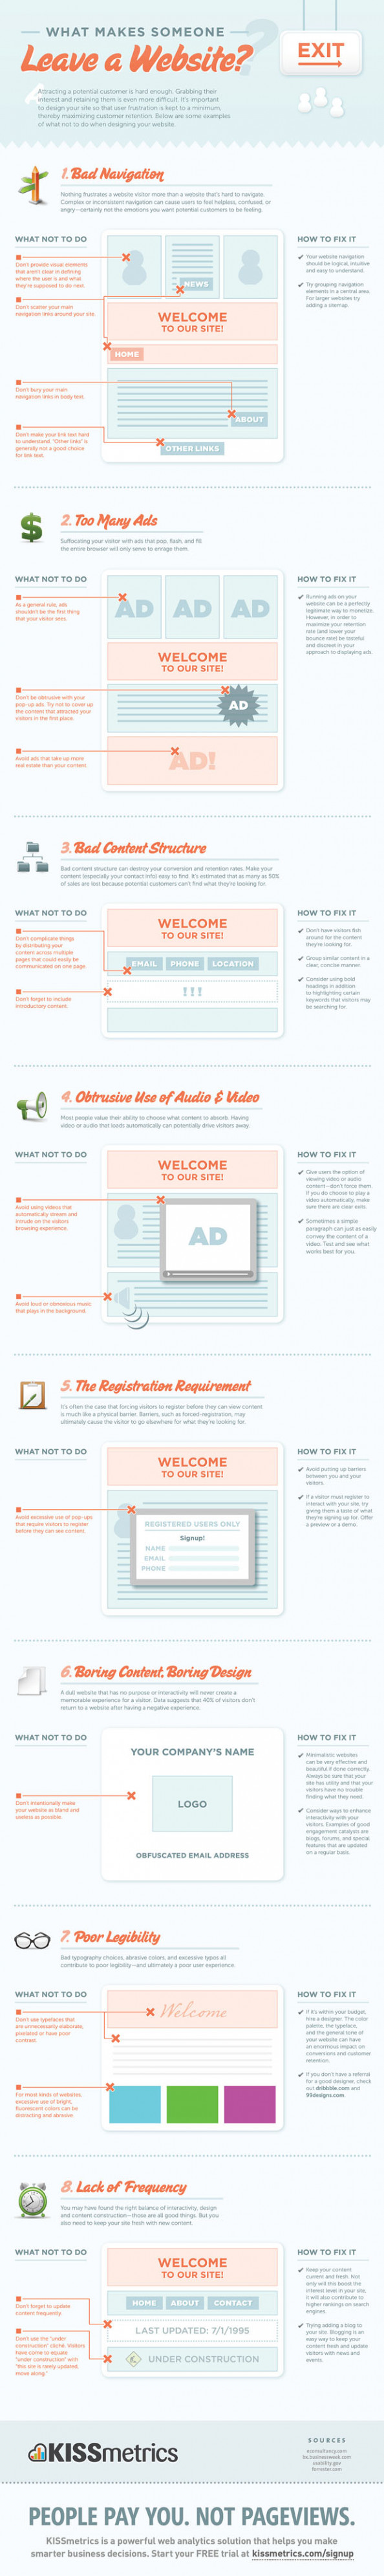 What Makes Someone Leave A Website Infographic